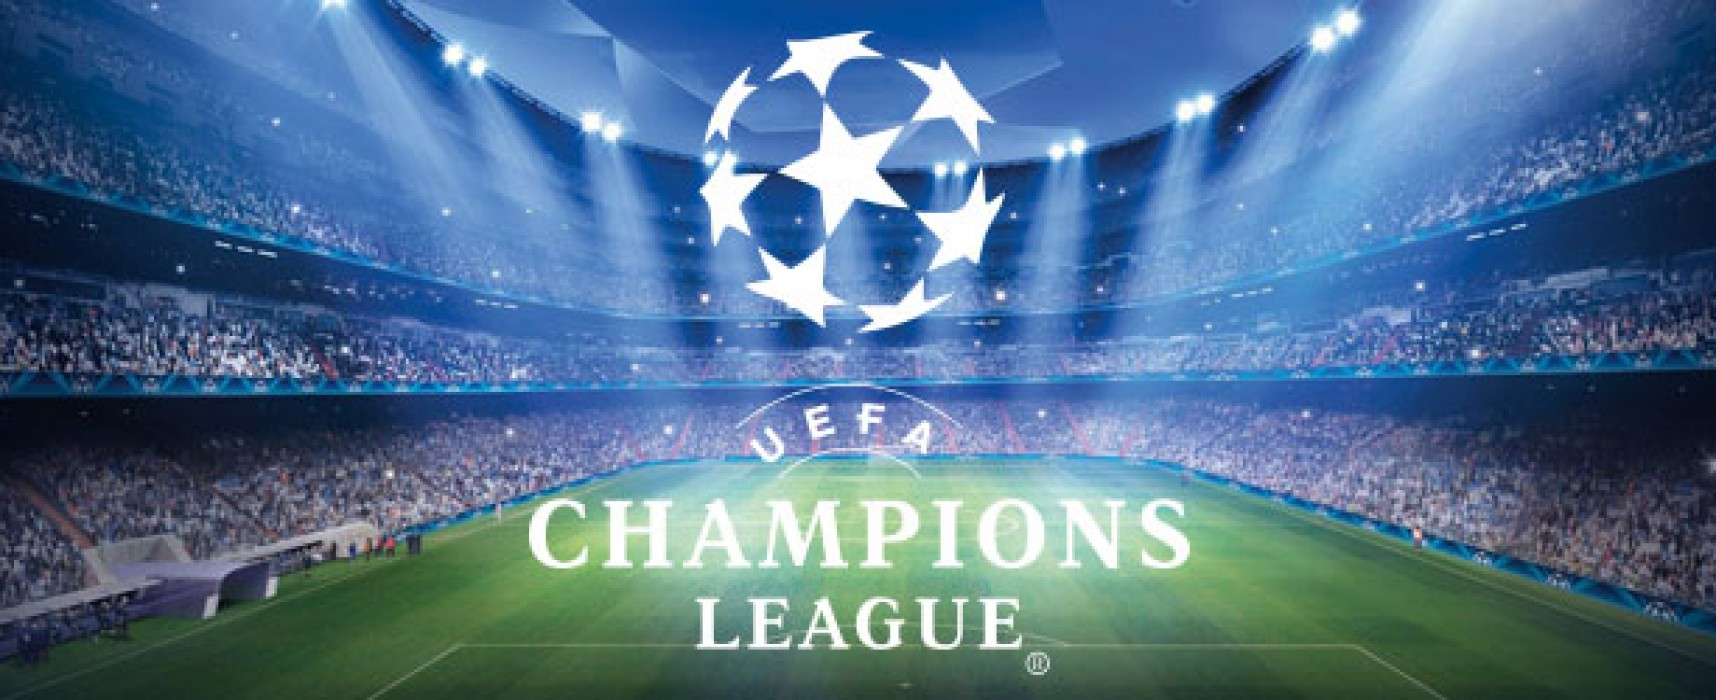 champions league - photo #16